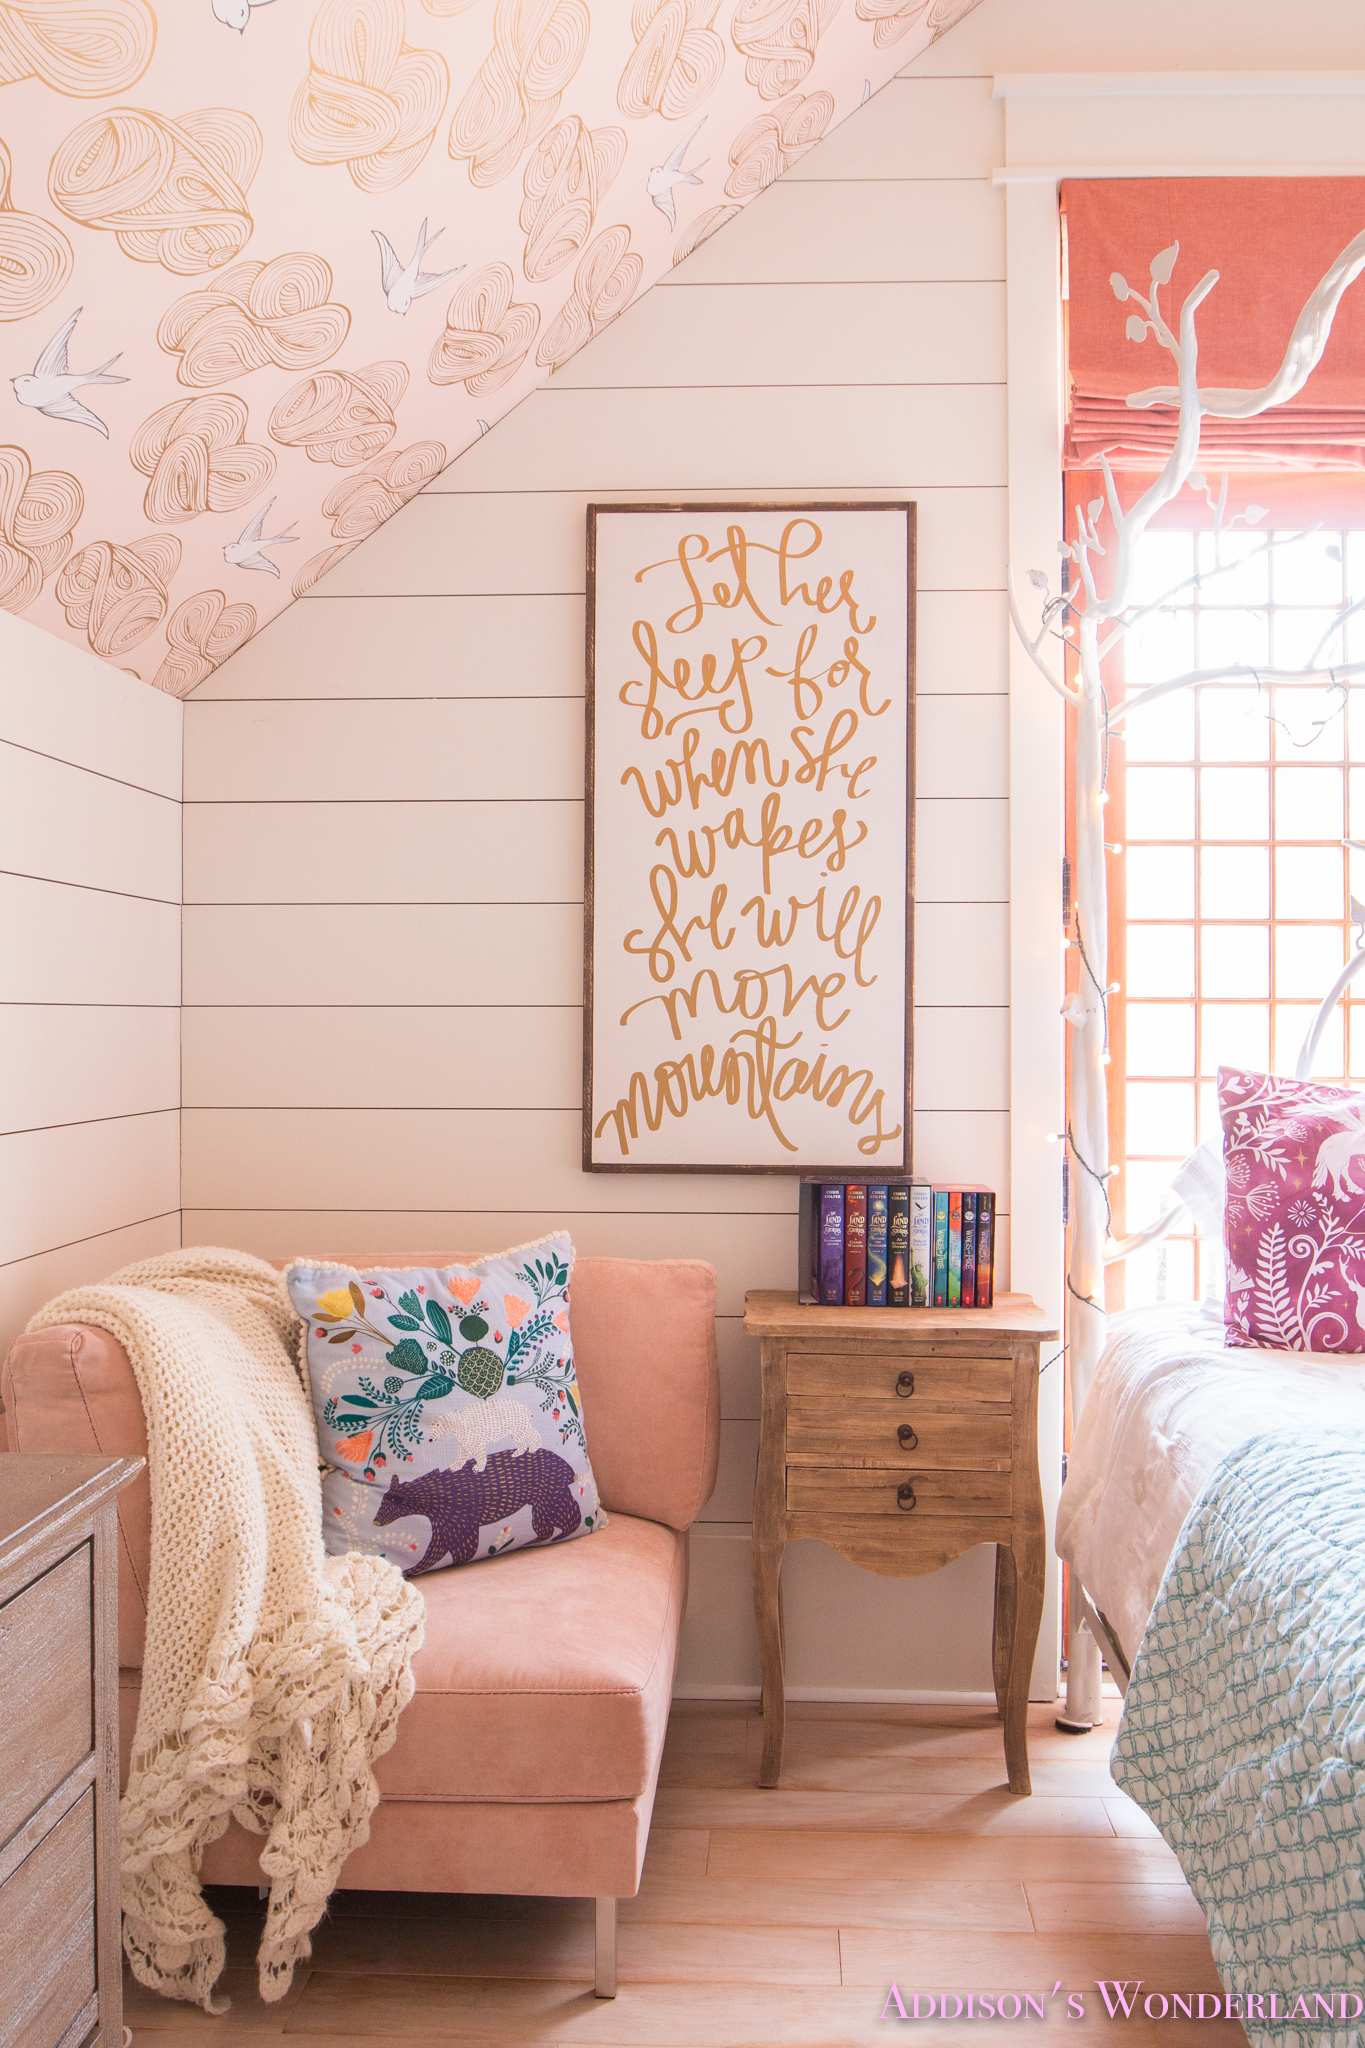 Popular Wallpaper Harry Potter Colorful - harry-potter-themed-girls-bed-bedroom-decor-design-wallpaper-ceiling-anthropologie-home-3-of-13  Collection_778788.jpg